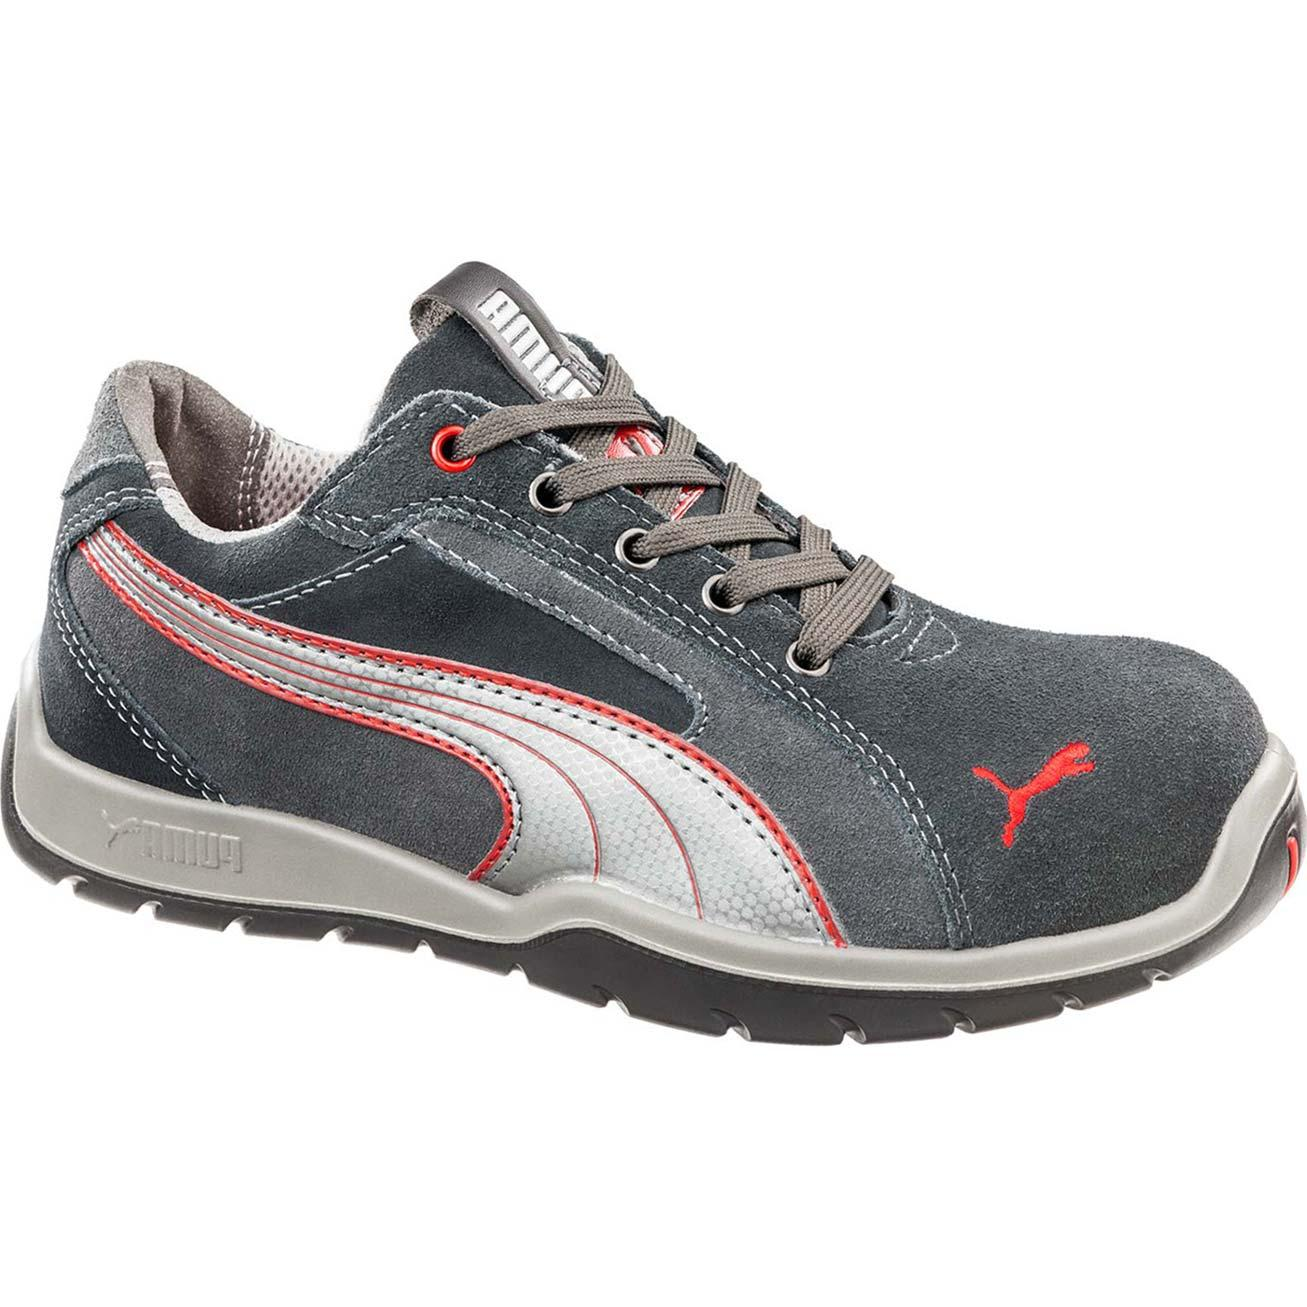 bfb60d0e8116 Puma Moto Protect Dakar Steel Toe Static-Dissipative Work Athletic Shoe